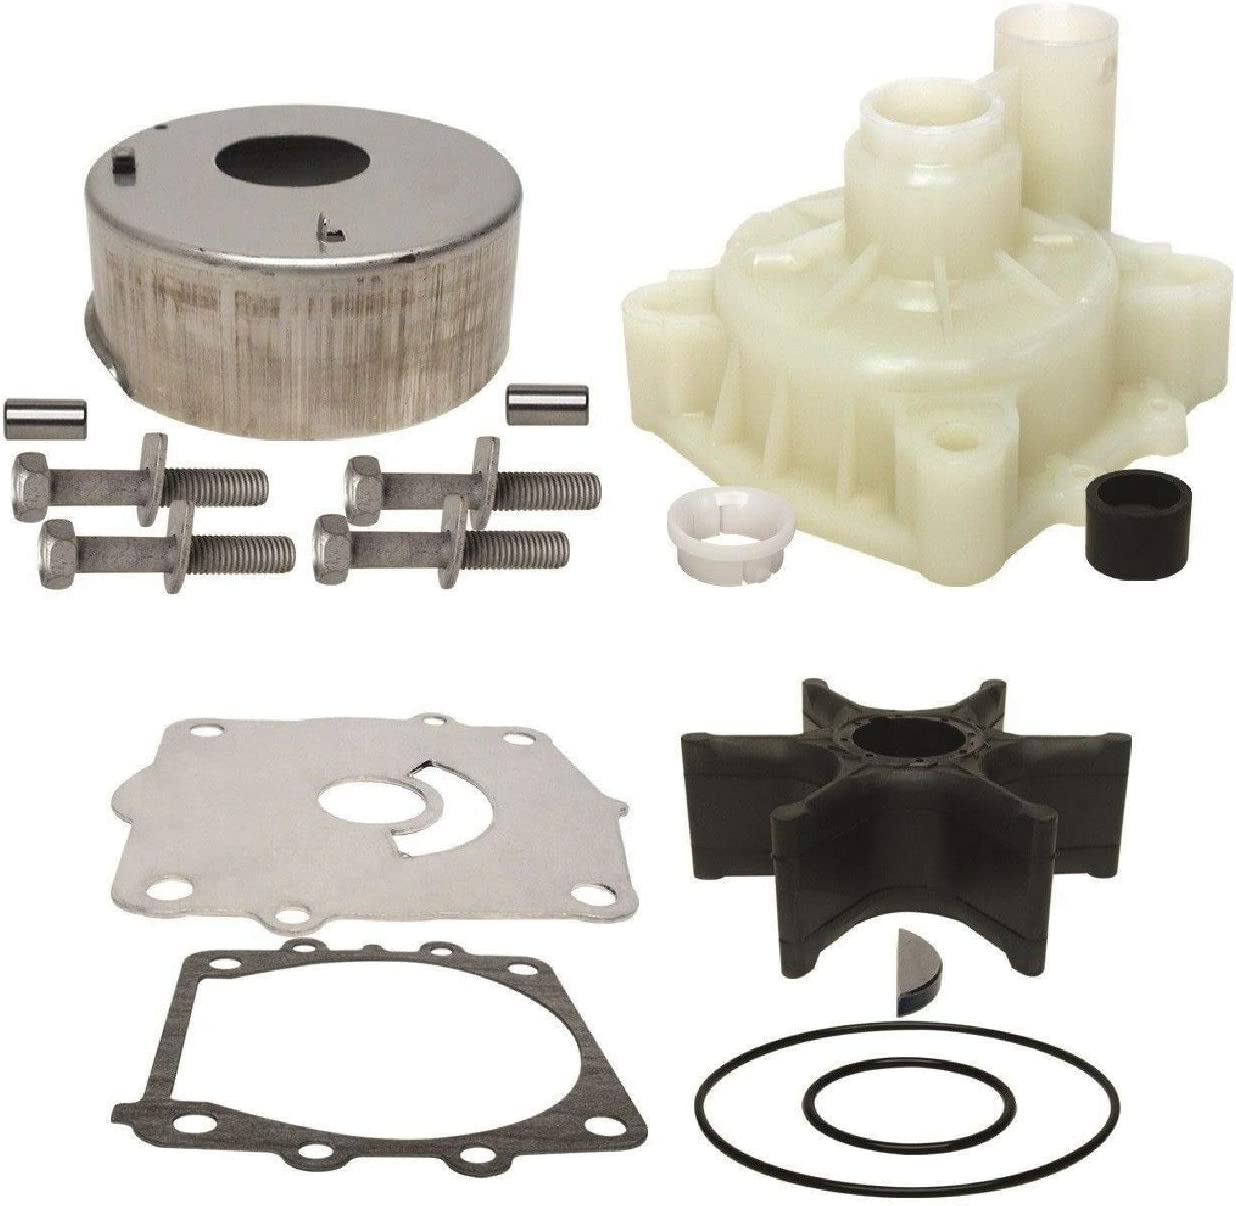 GLM Water Pump Impeller Repair Kit with Housing for Yamaha 4-Stroke 115 Hp F115 LF115 VF115, Replaces 68V-W0078-00-00 & 61A-44311-00 Read Item Description for Exact Applications